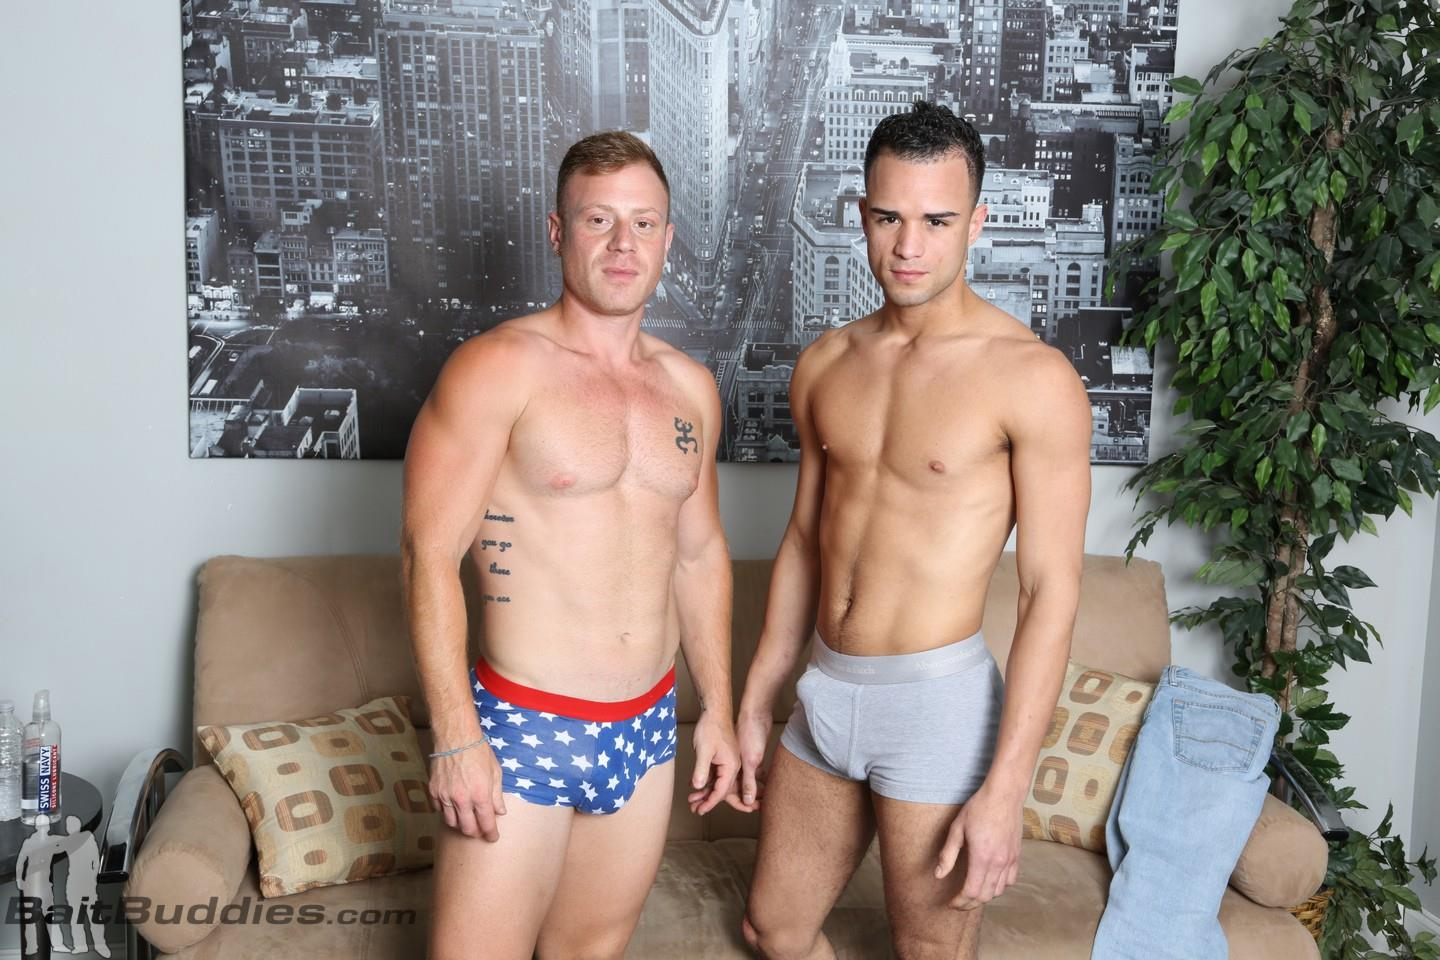 Bait Buddies Saxon and Javier Cruz Straight Ginger With Thick Cock Amateur Gay Porn 03 Straight Beefy Ginger Fucks His First Man Ass For Cash